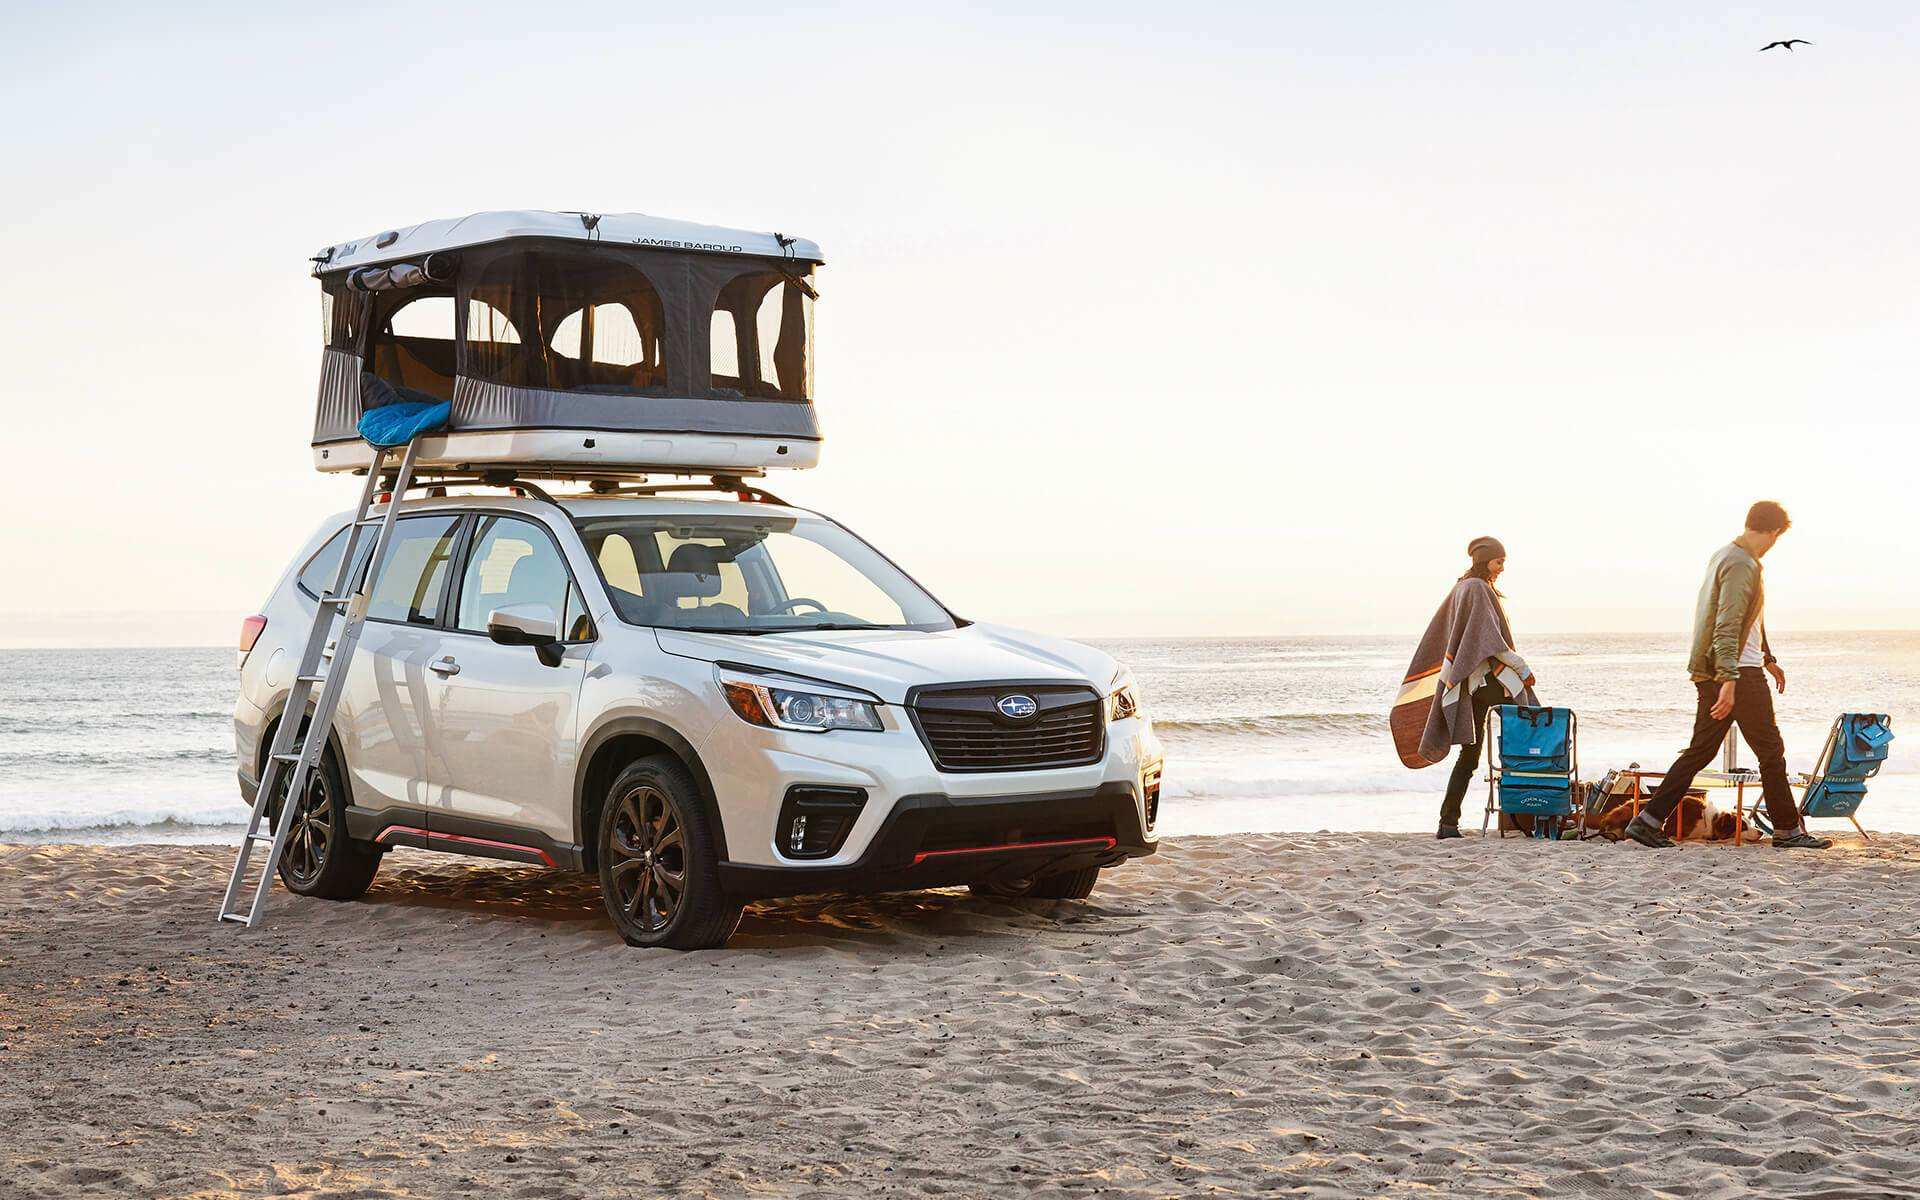 73 All New The 2019 Subaru Forester Vs Jeep Cherokee Review Pricing with The 2019 Subaru Forester Vs Jeep Cherokee Review